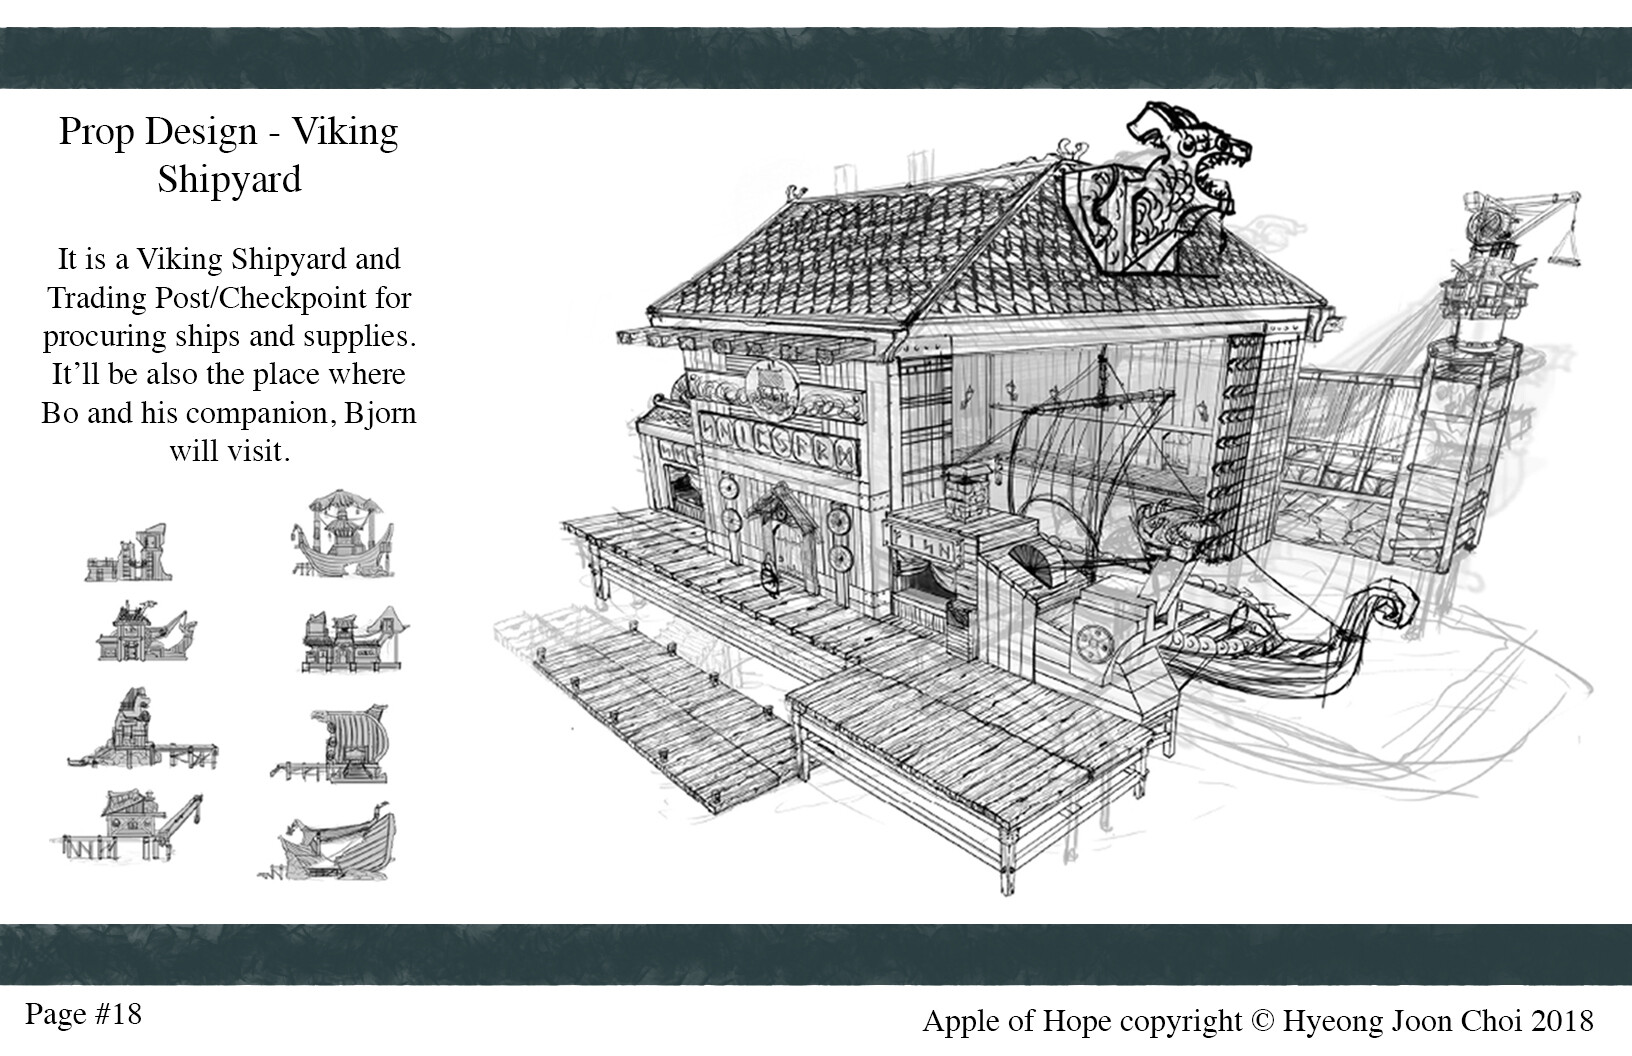 Production Design: Viking Shipyard